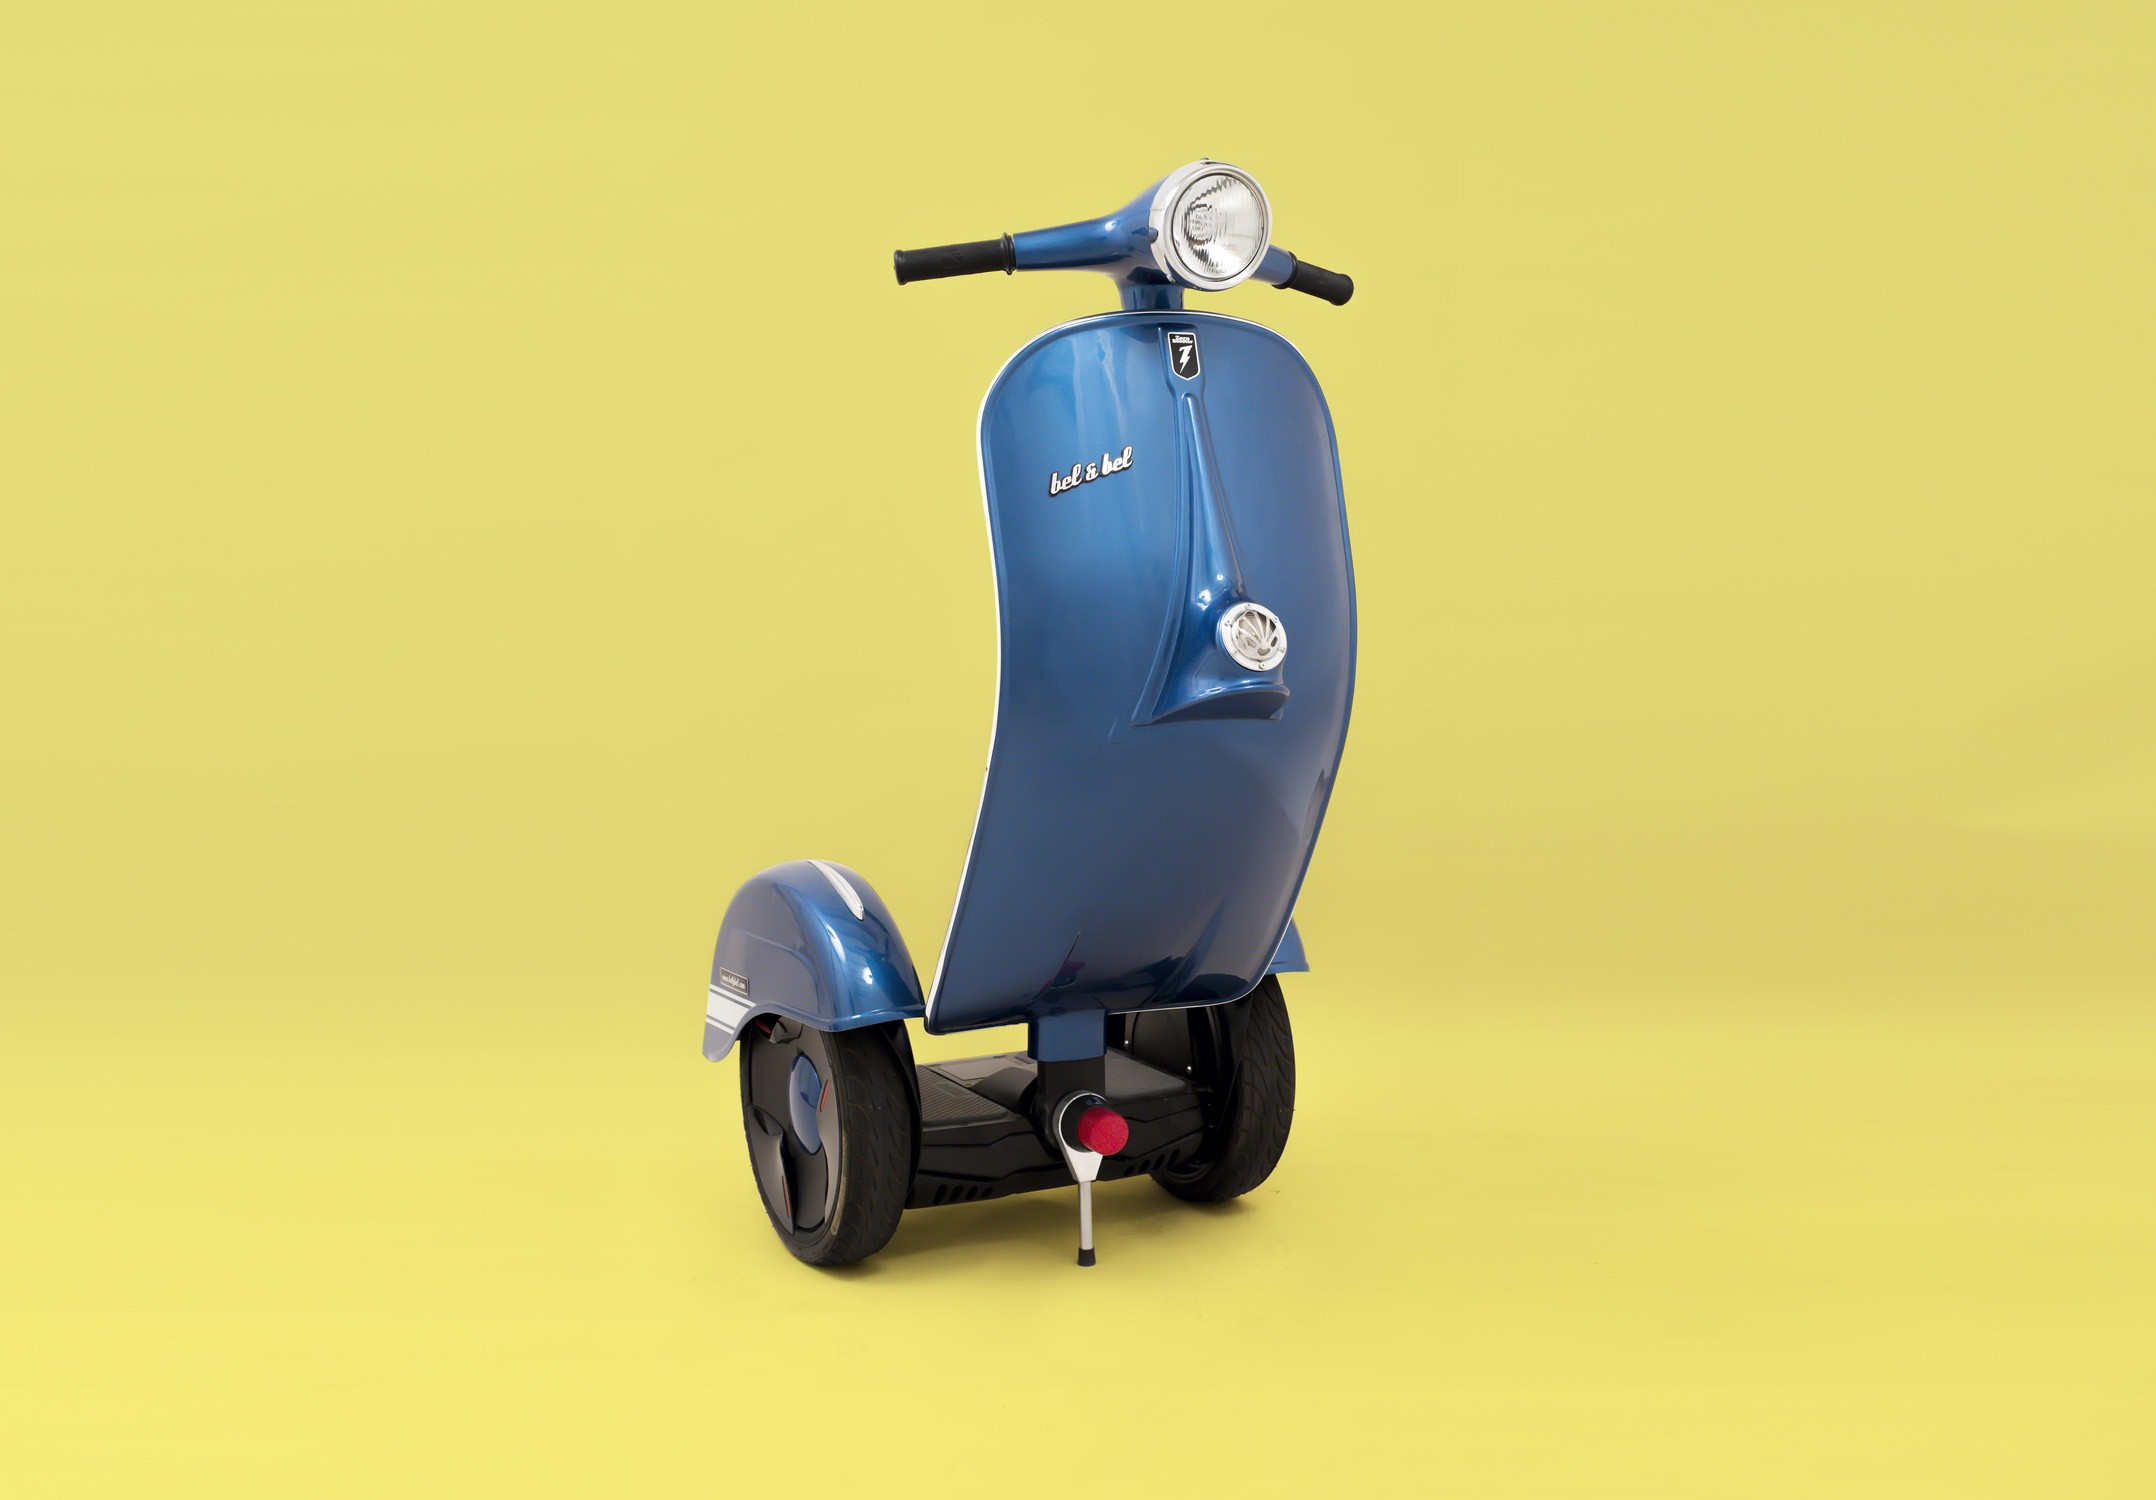 Zero Scooter Is The Real Deal Vespa Segway Based On The